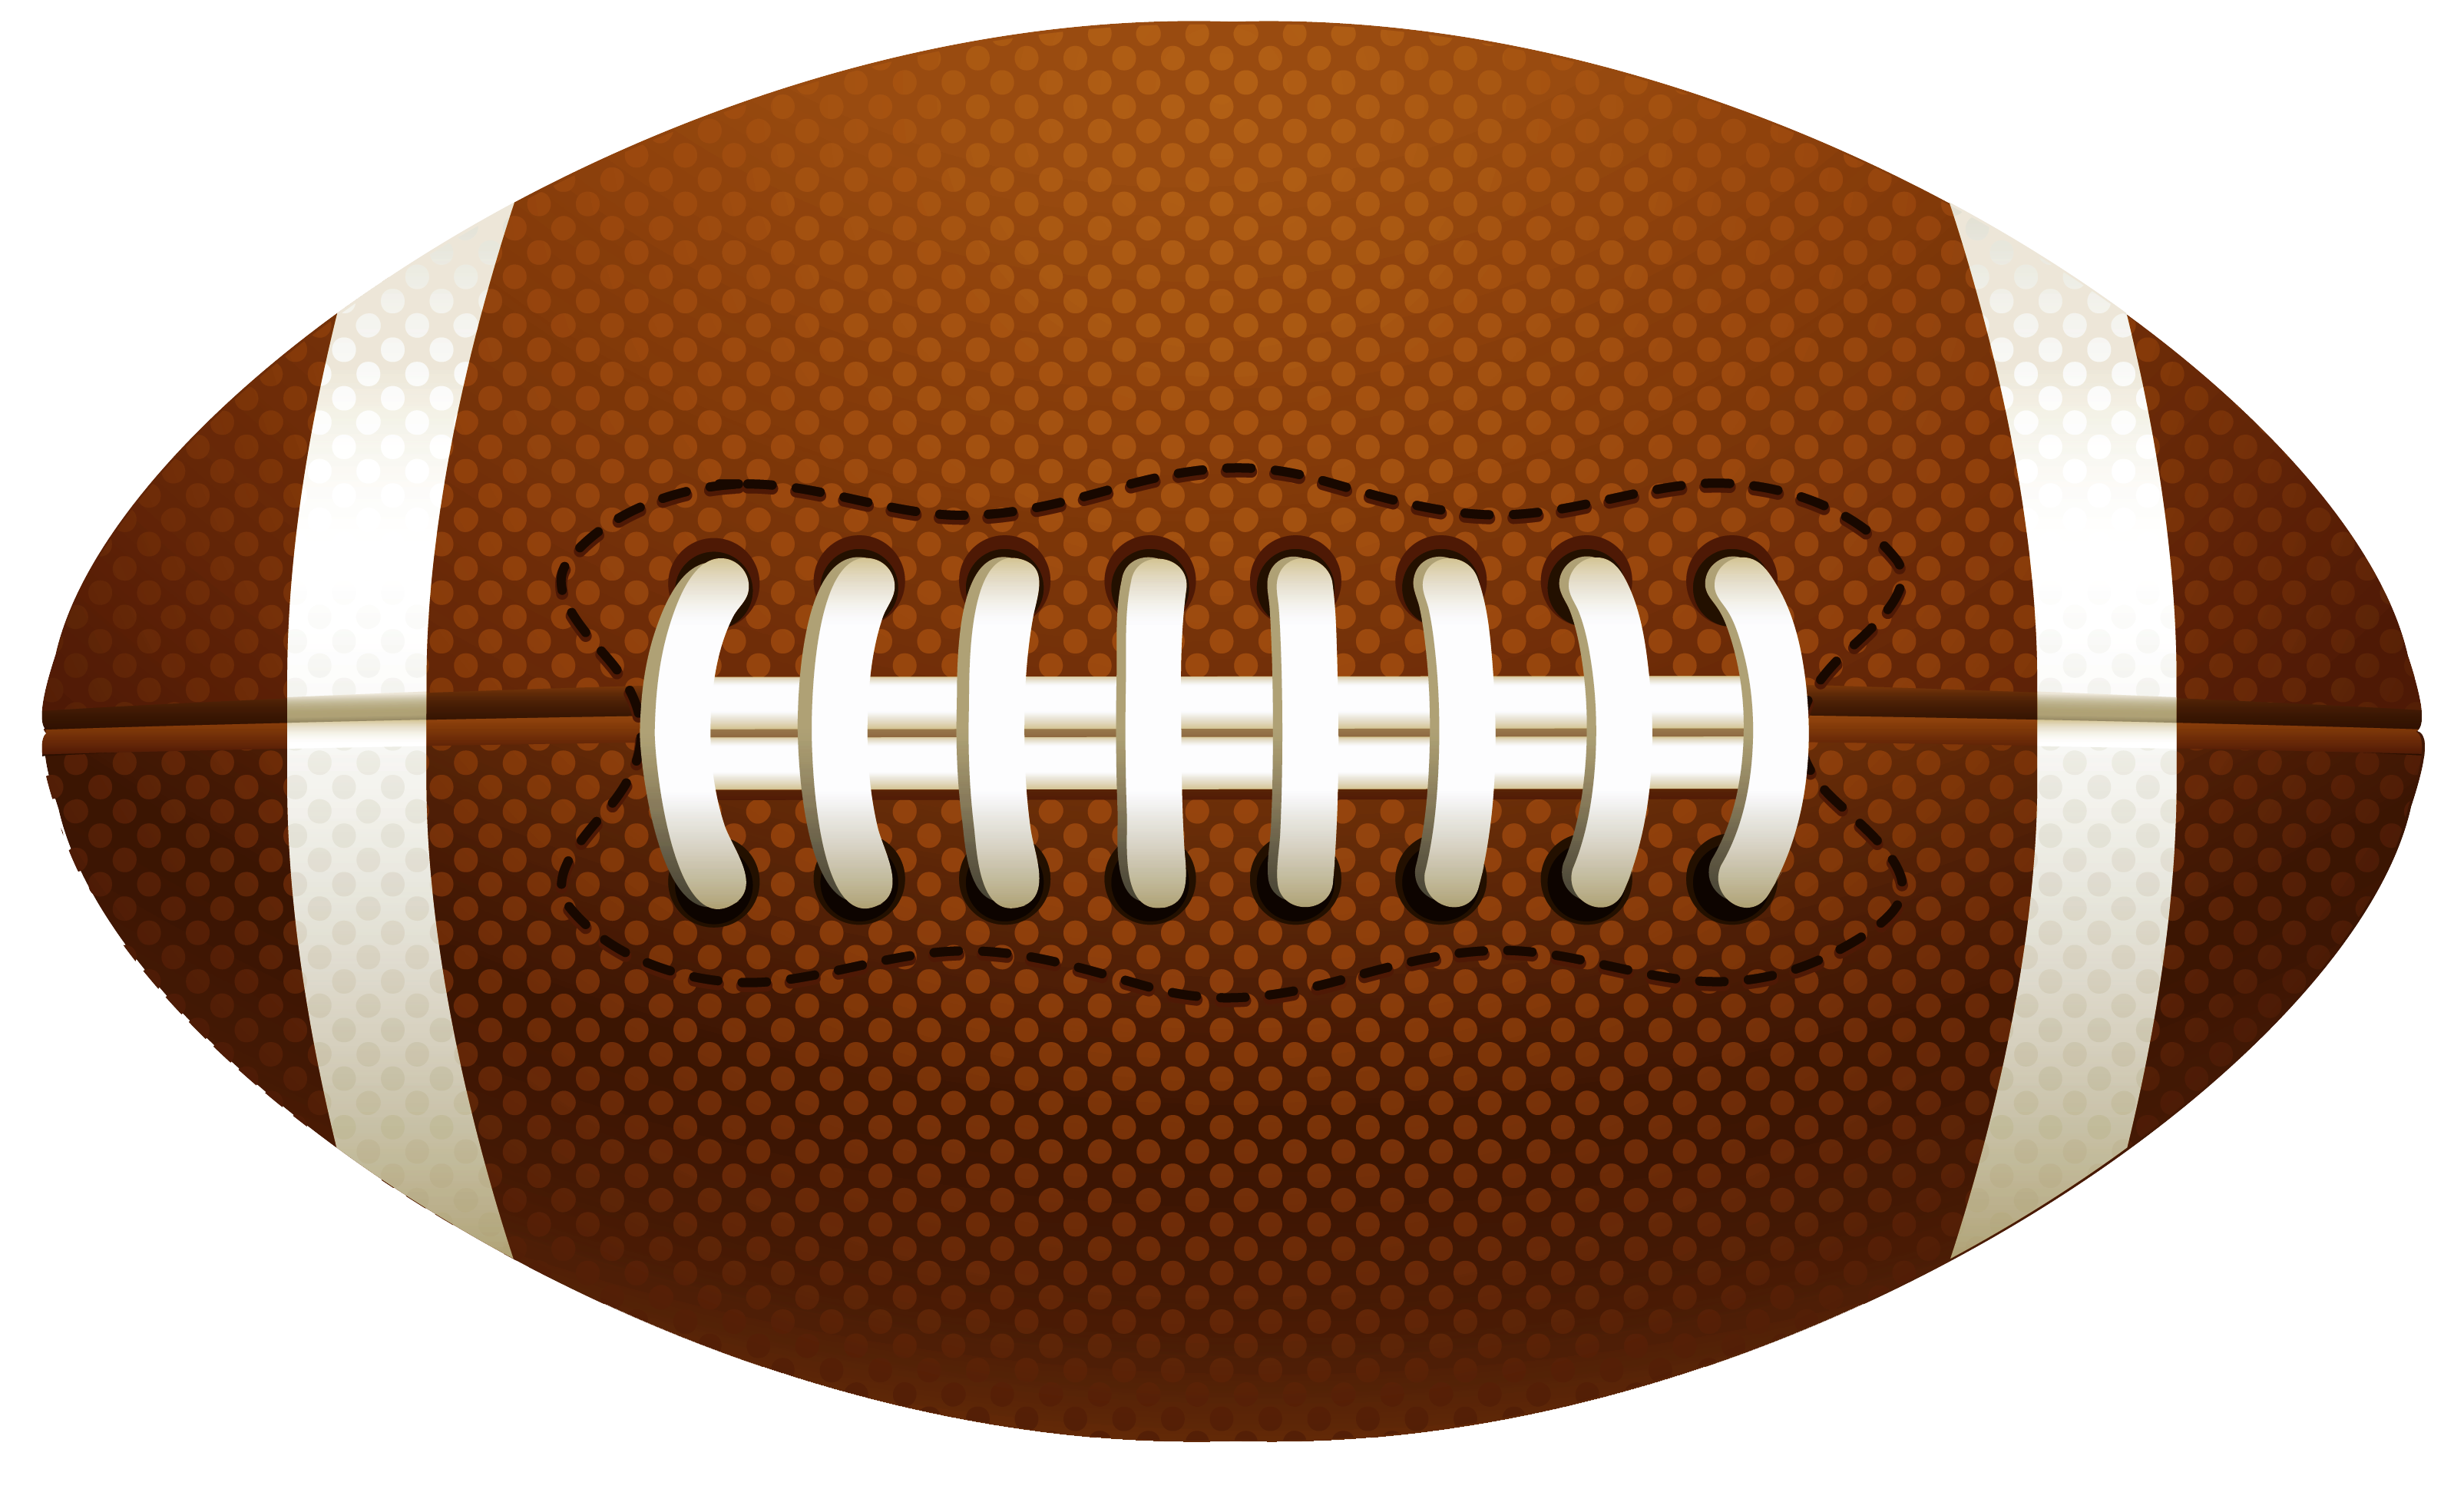 collection of a. Football clipart nfl